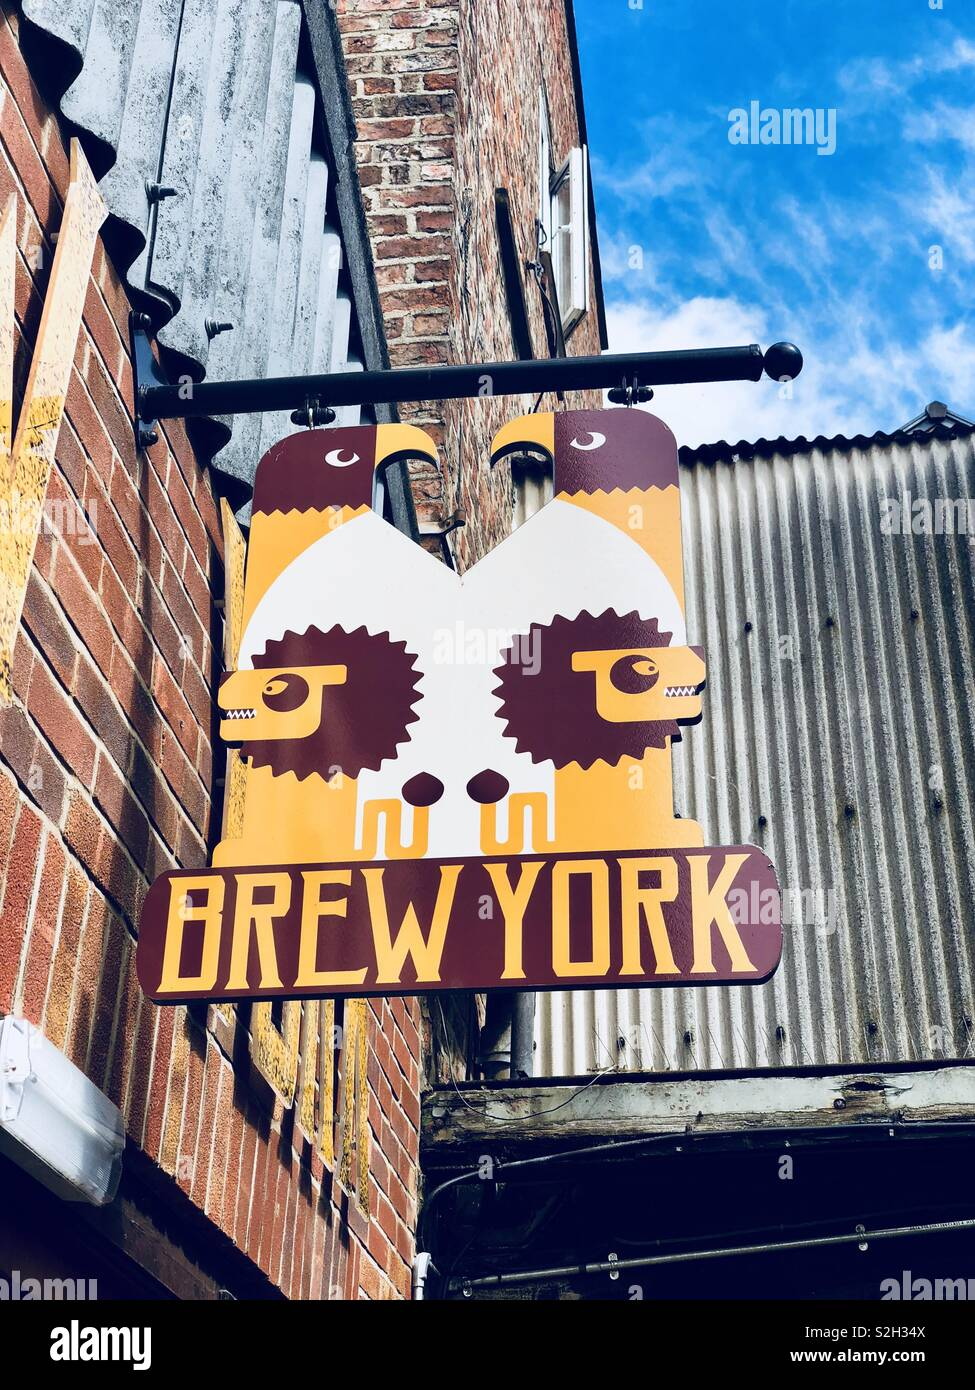 Brew York Signage In York. - Stock Image